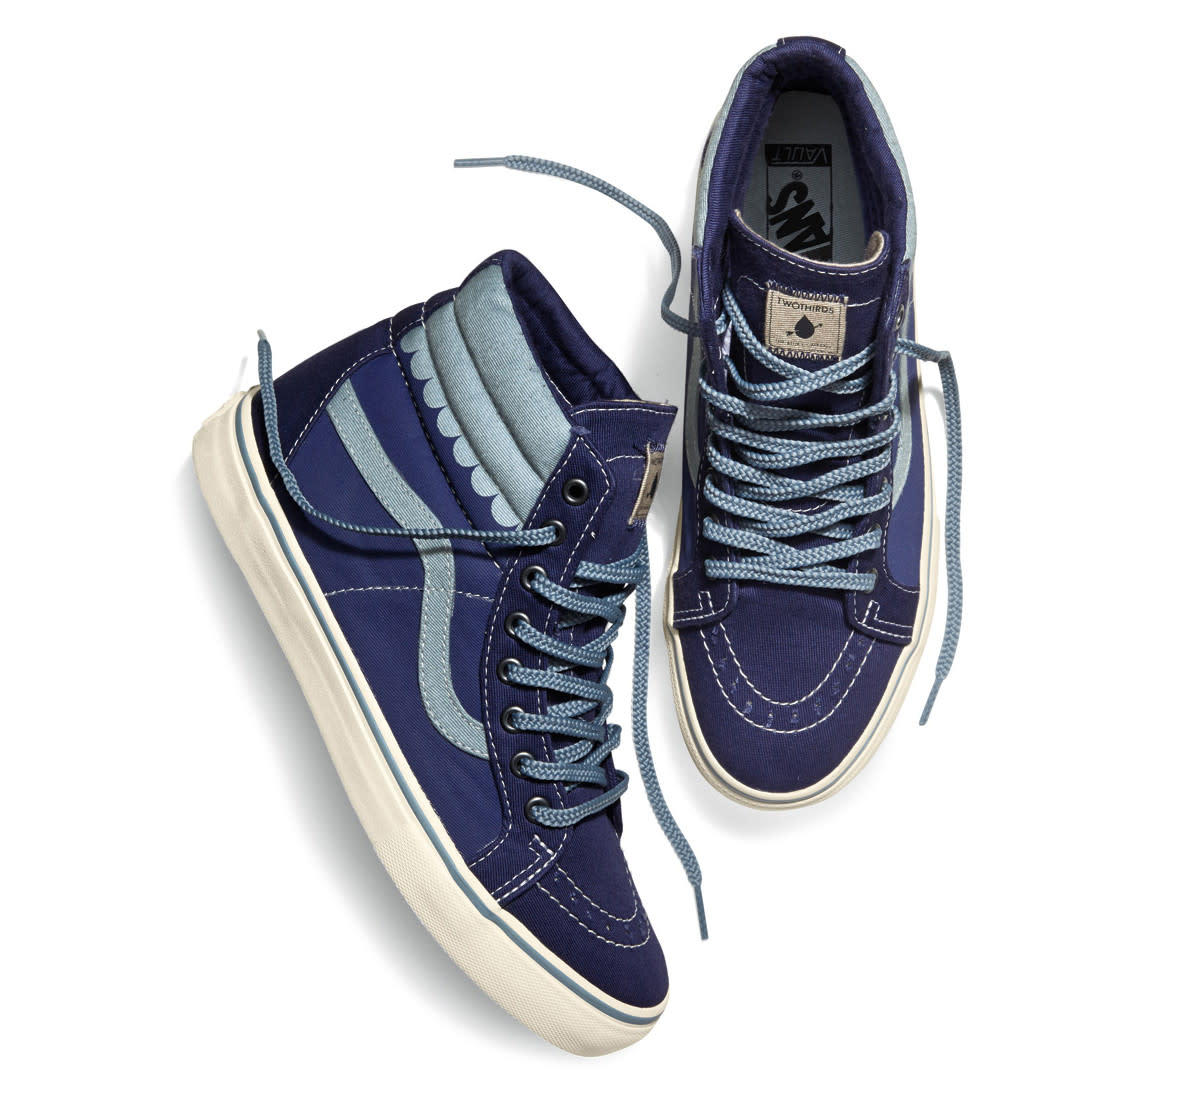 twothirds-vault-by-vans-collection-02